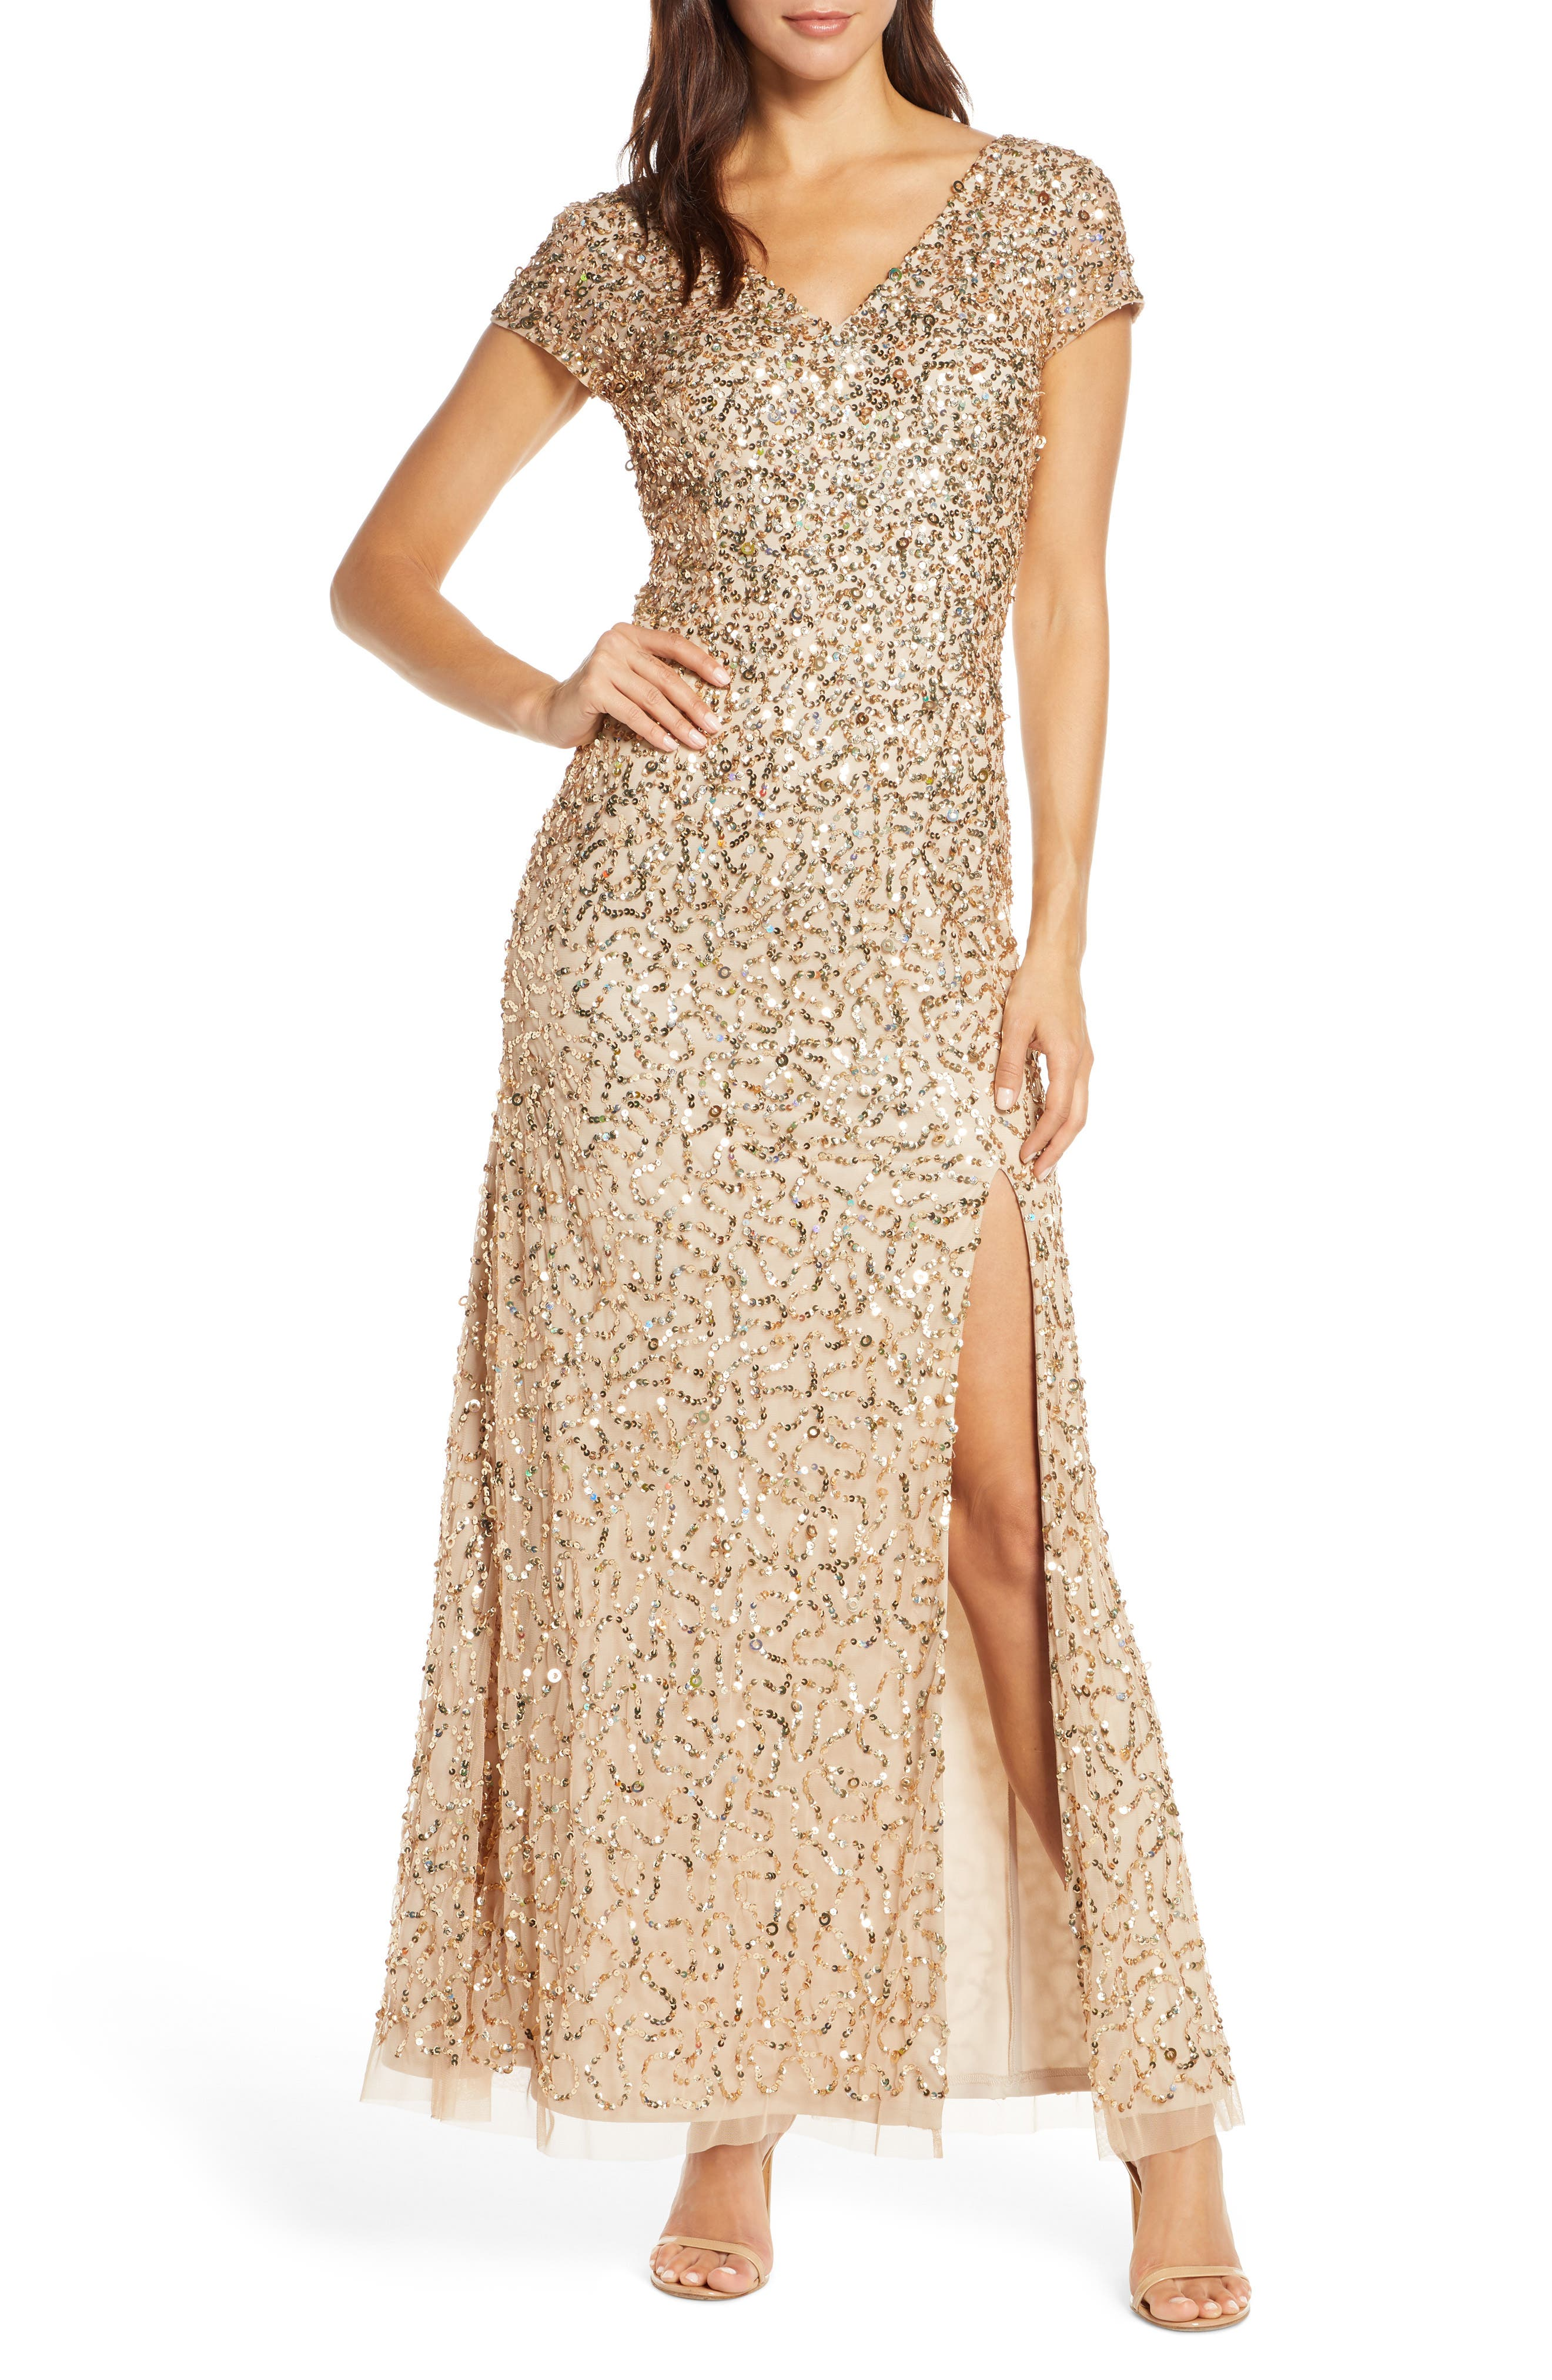 70s Prom, Formal, Evening, Party Dresses Womens Adrianna Papell Beaded V-Neck Evening Gown $289.00 AT vintagedancer.com